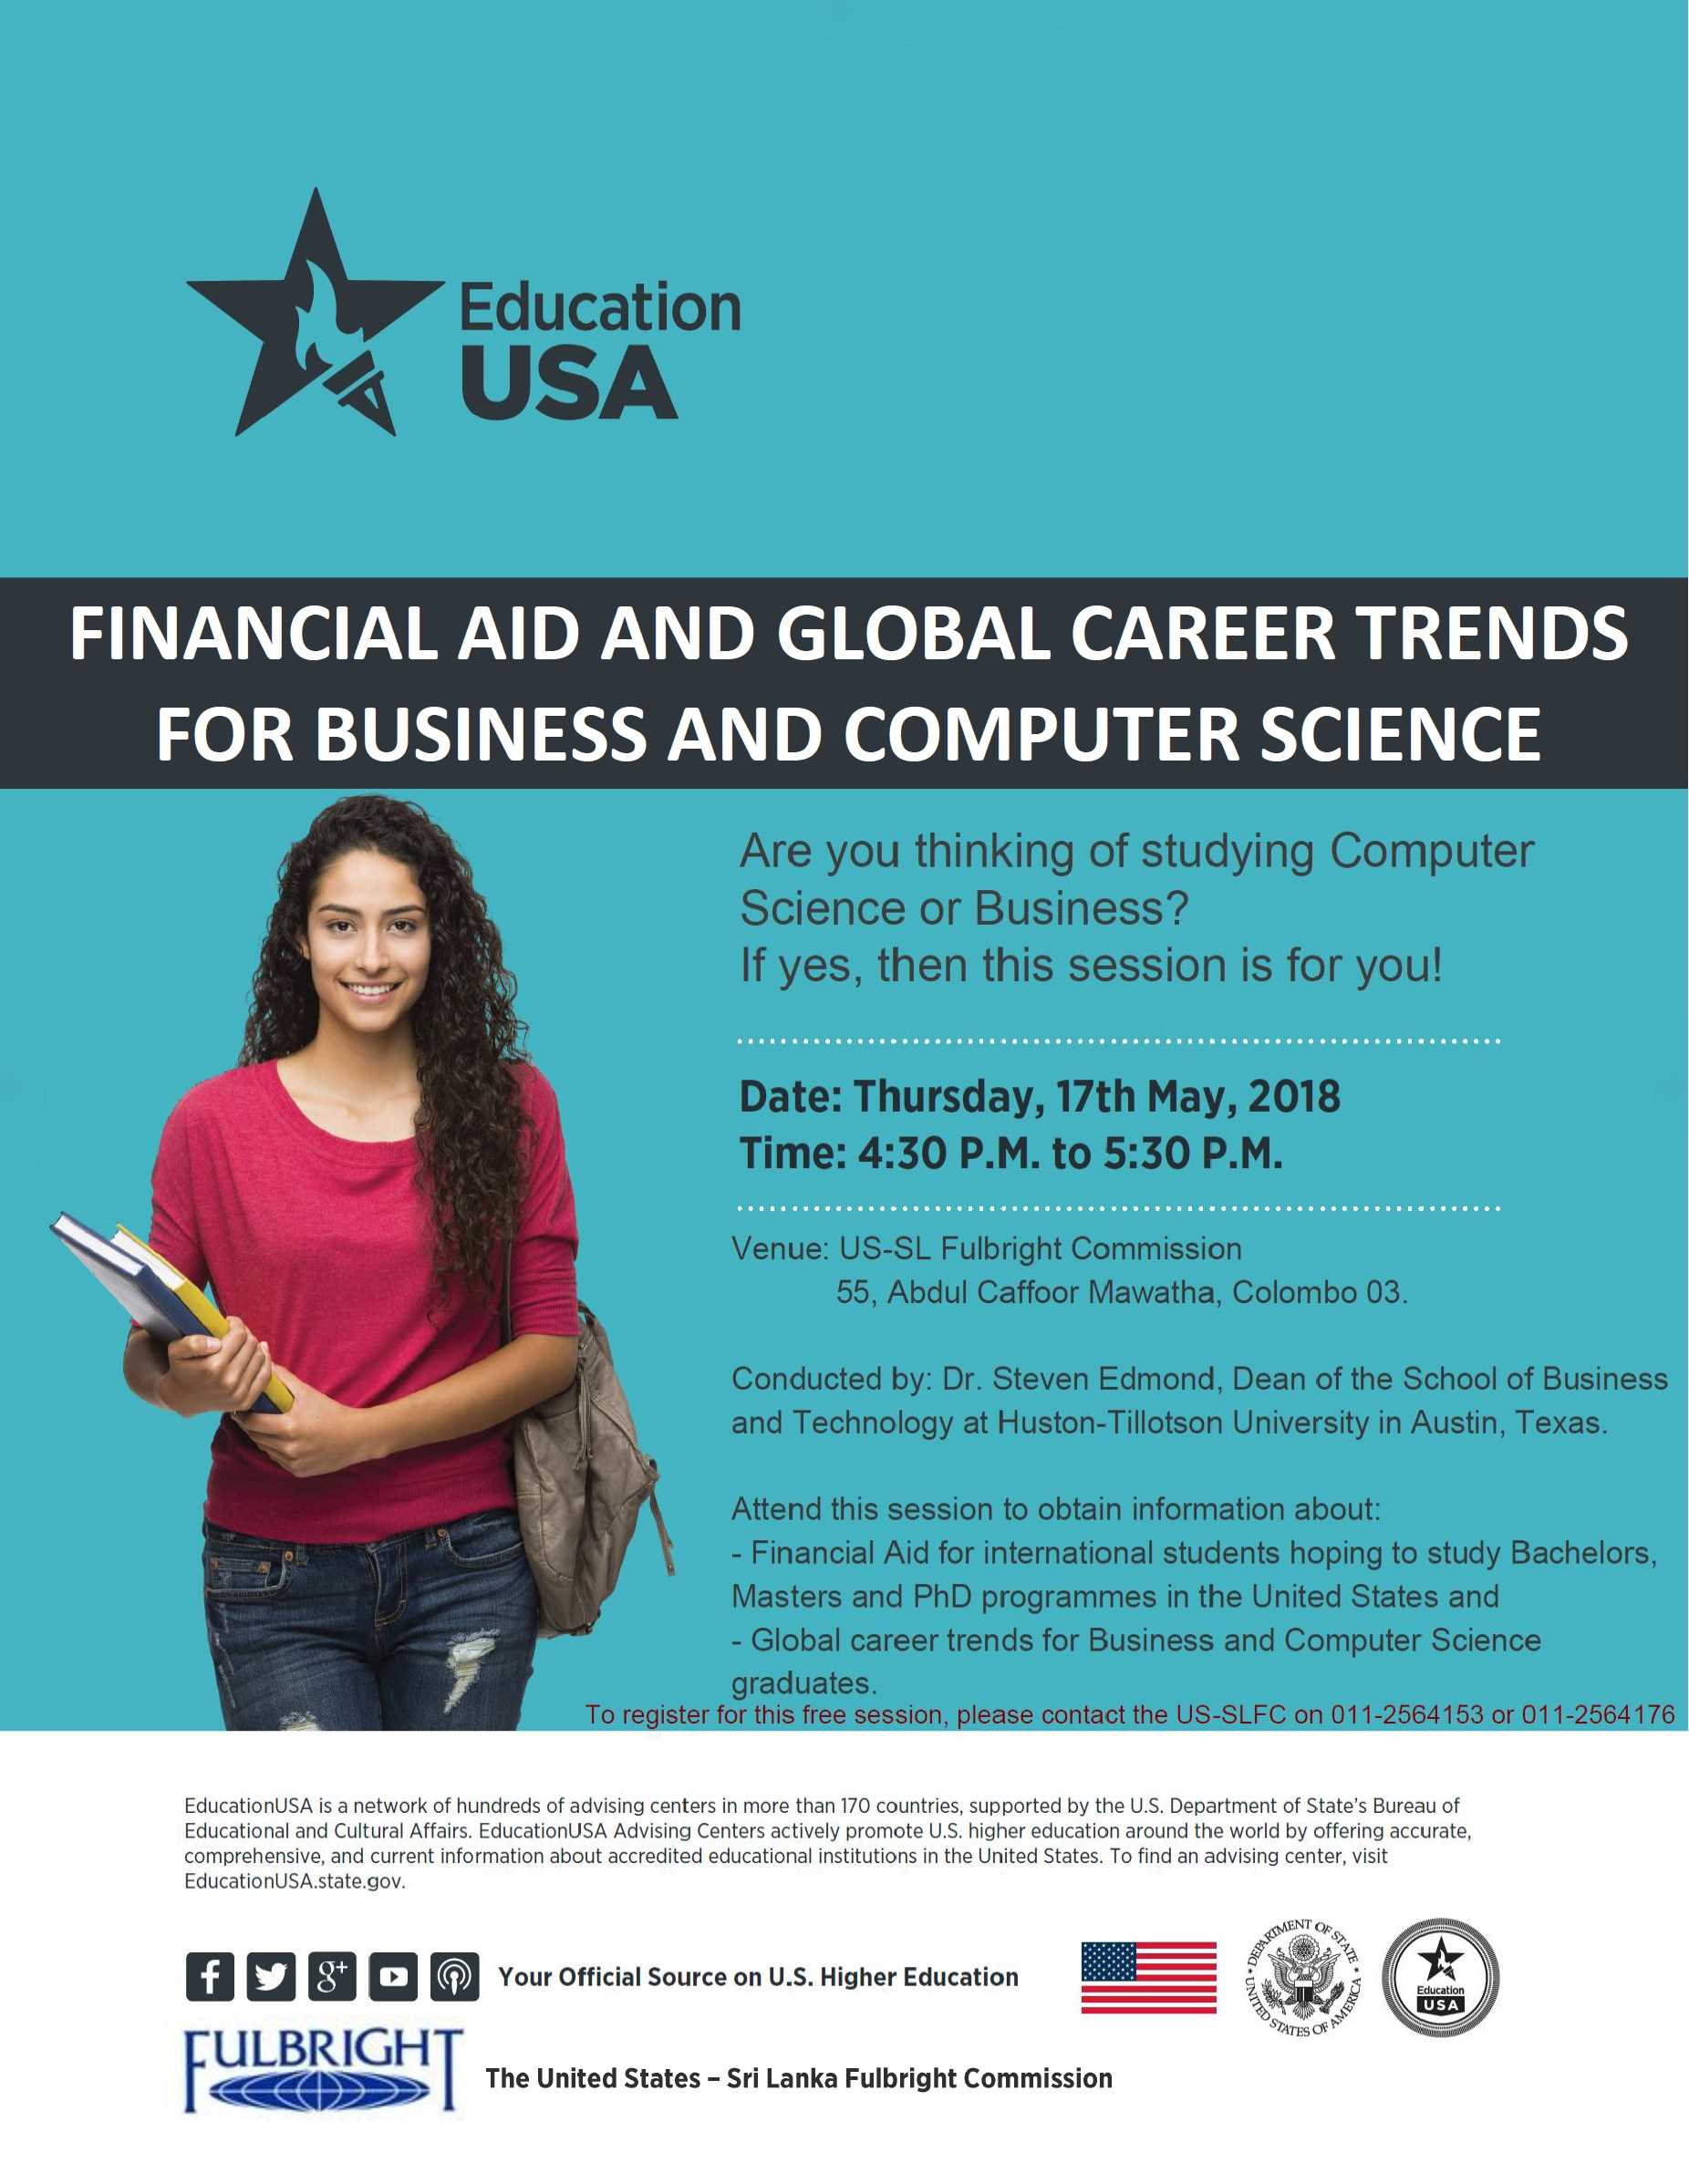 Free Session on 'Financial Aid and Global Career Trends for